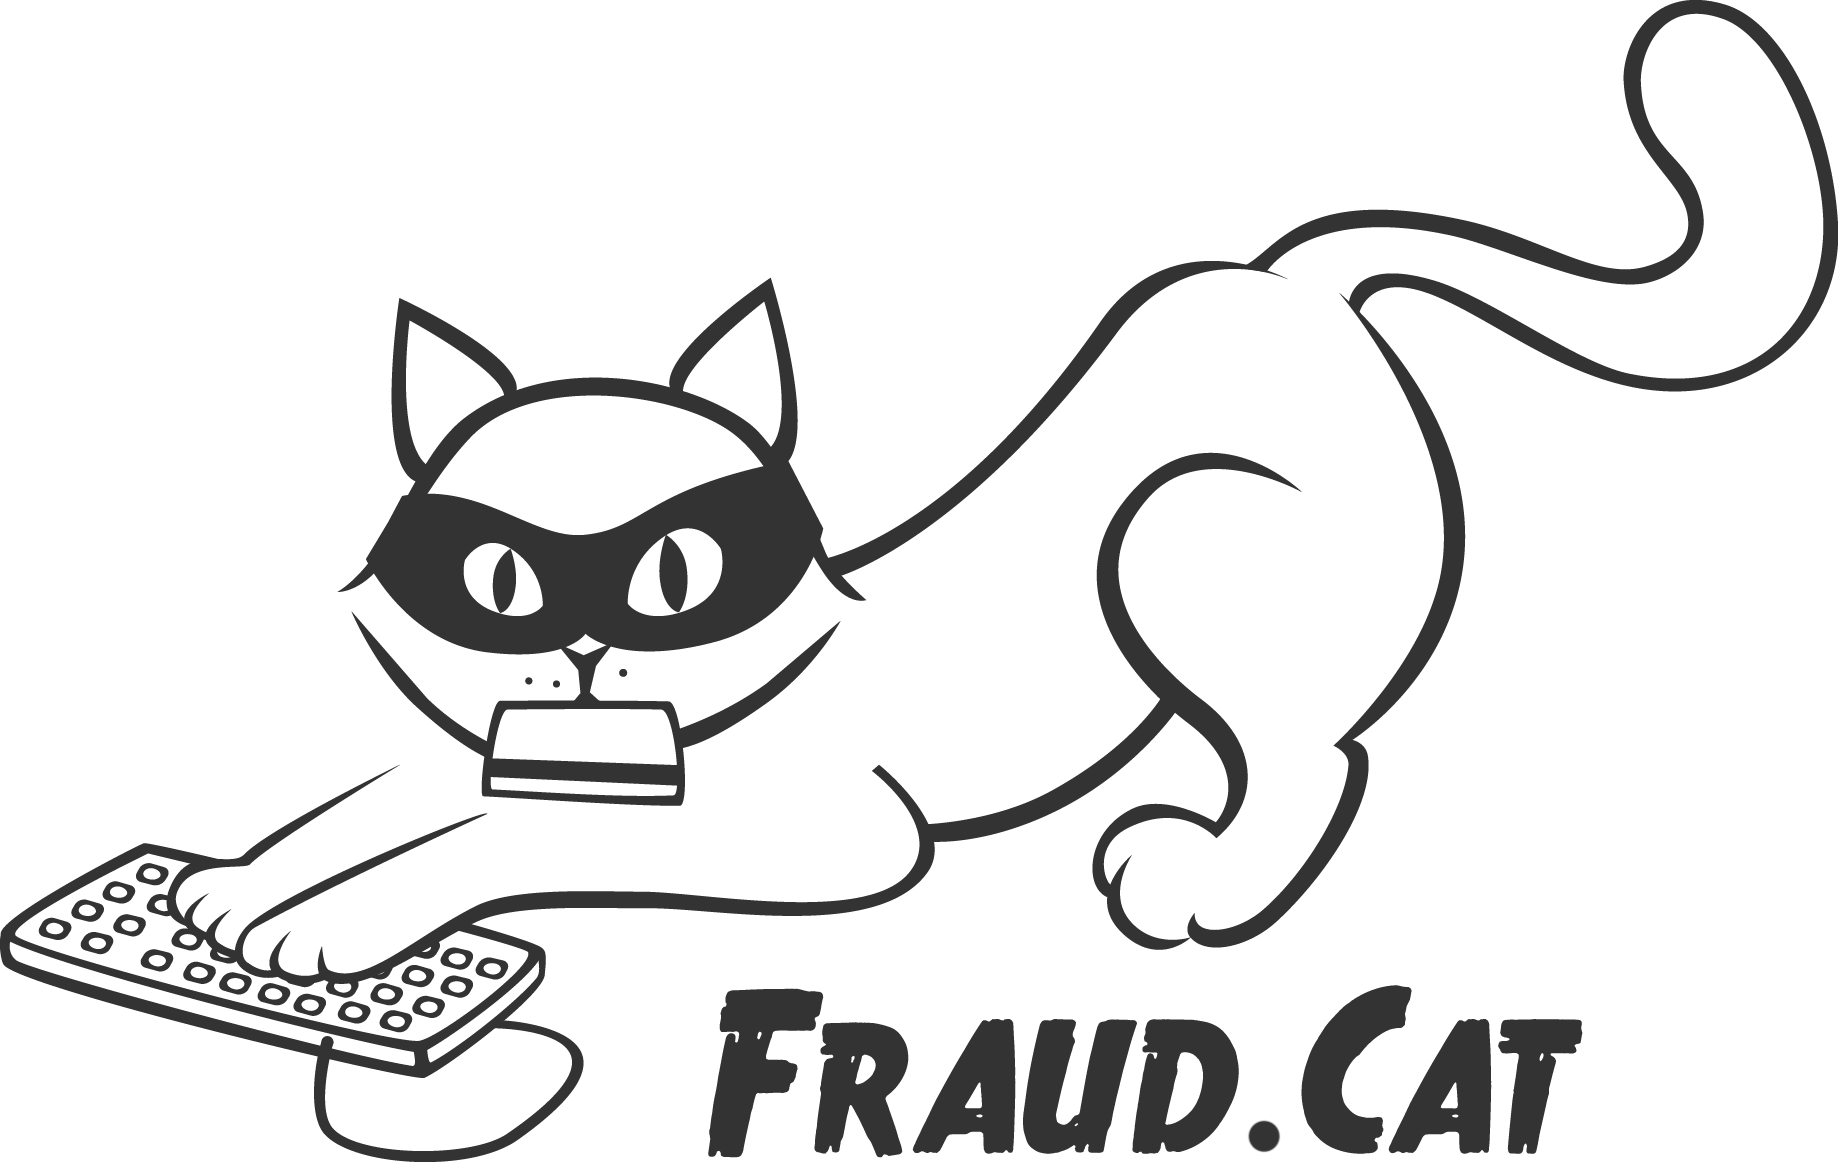 Fraud Cat